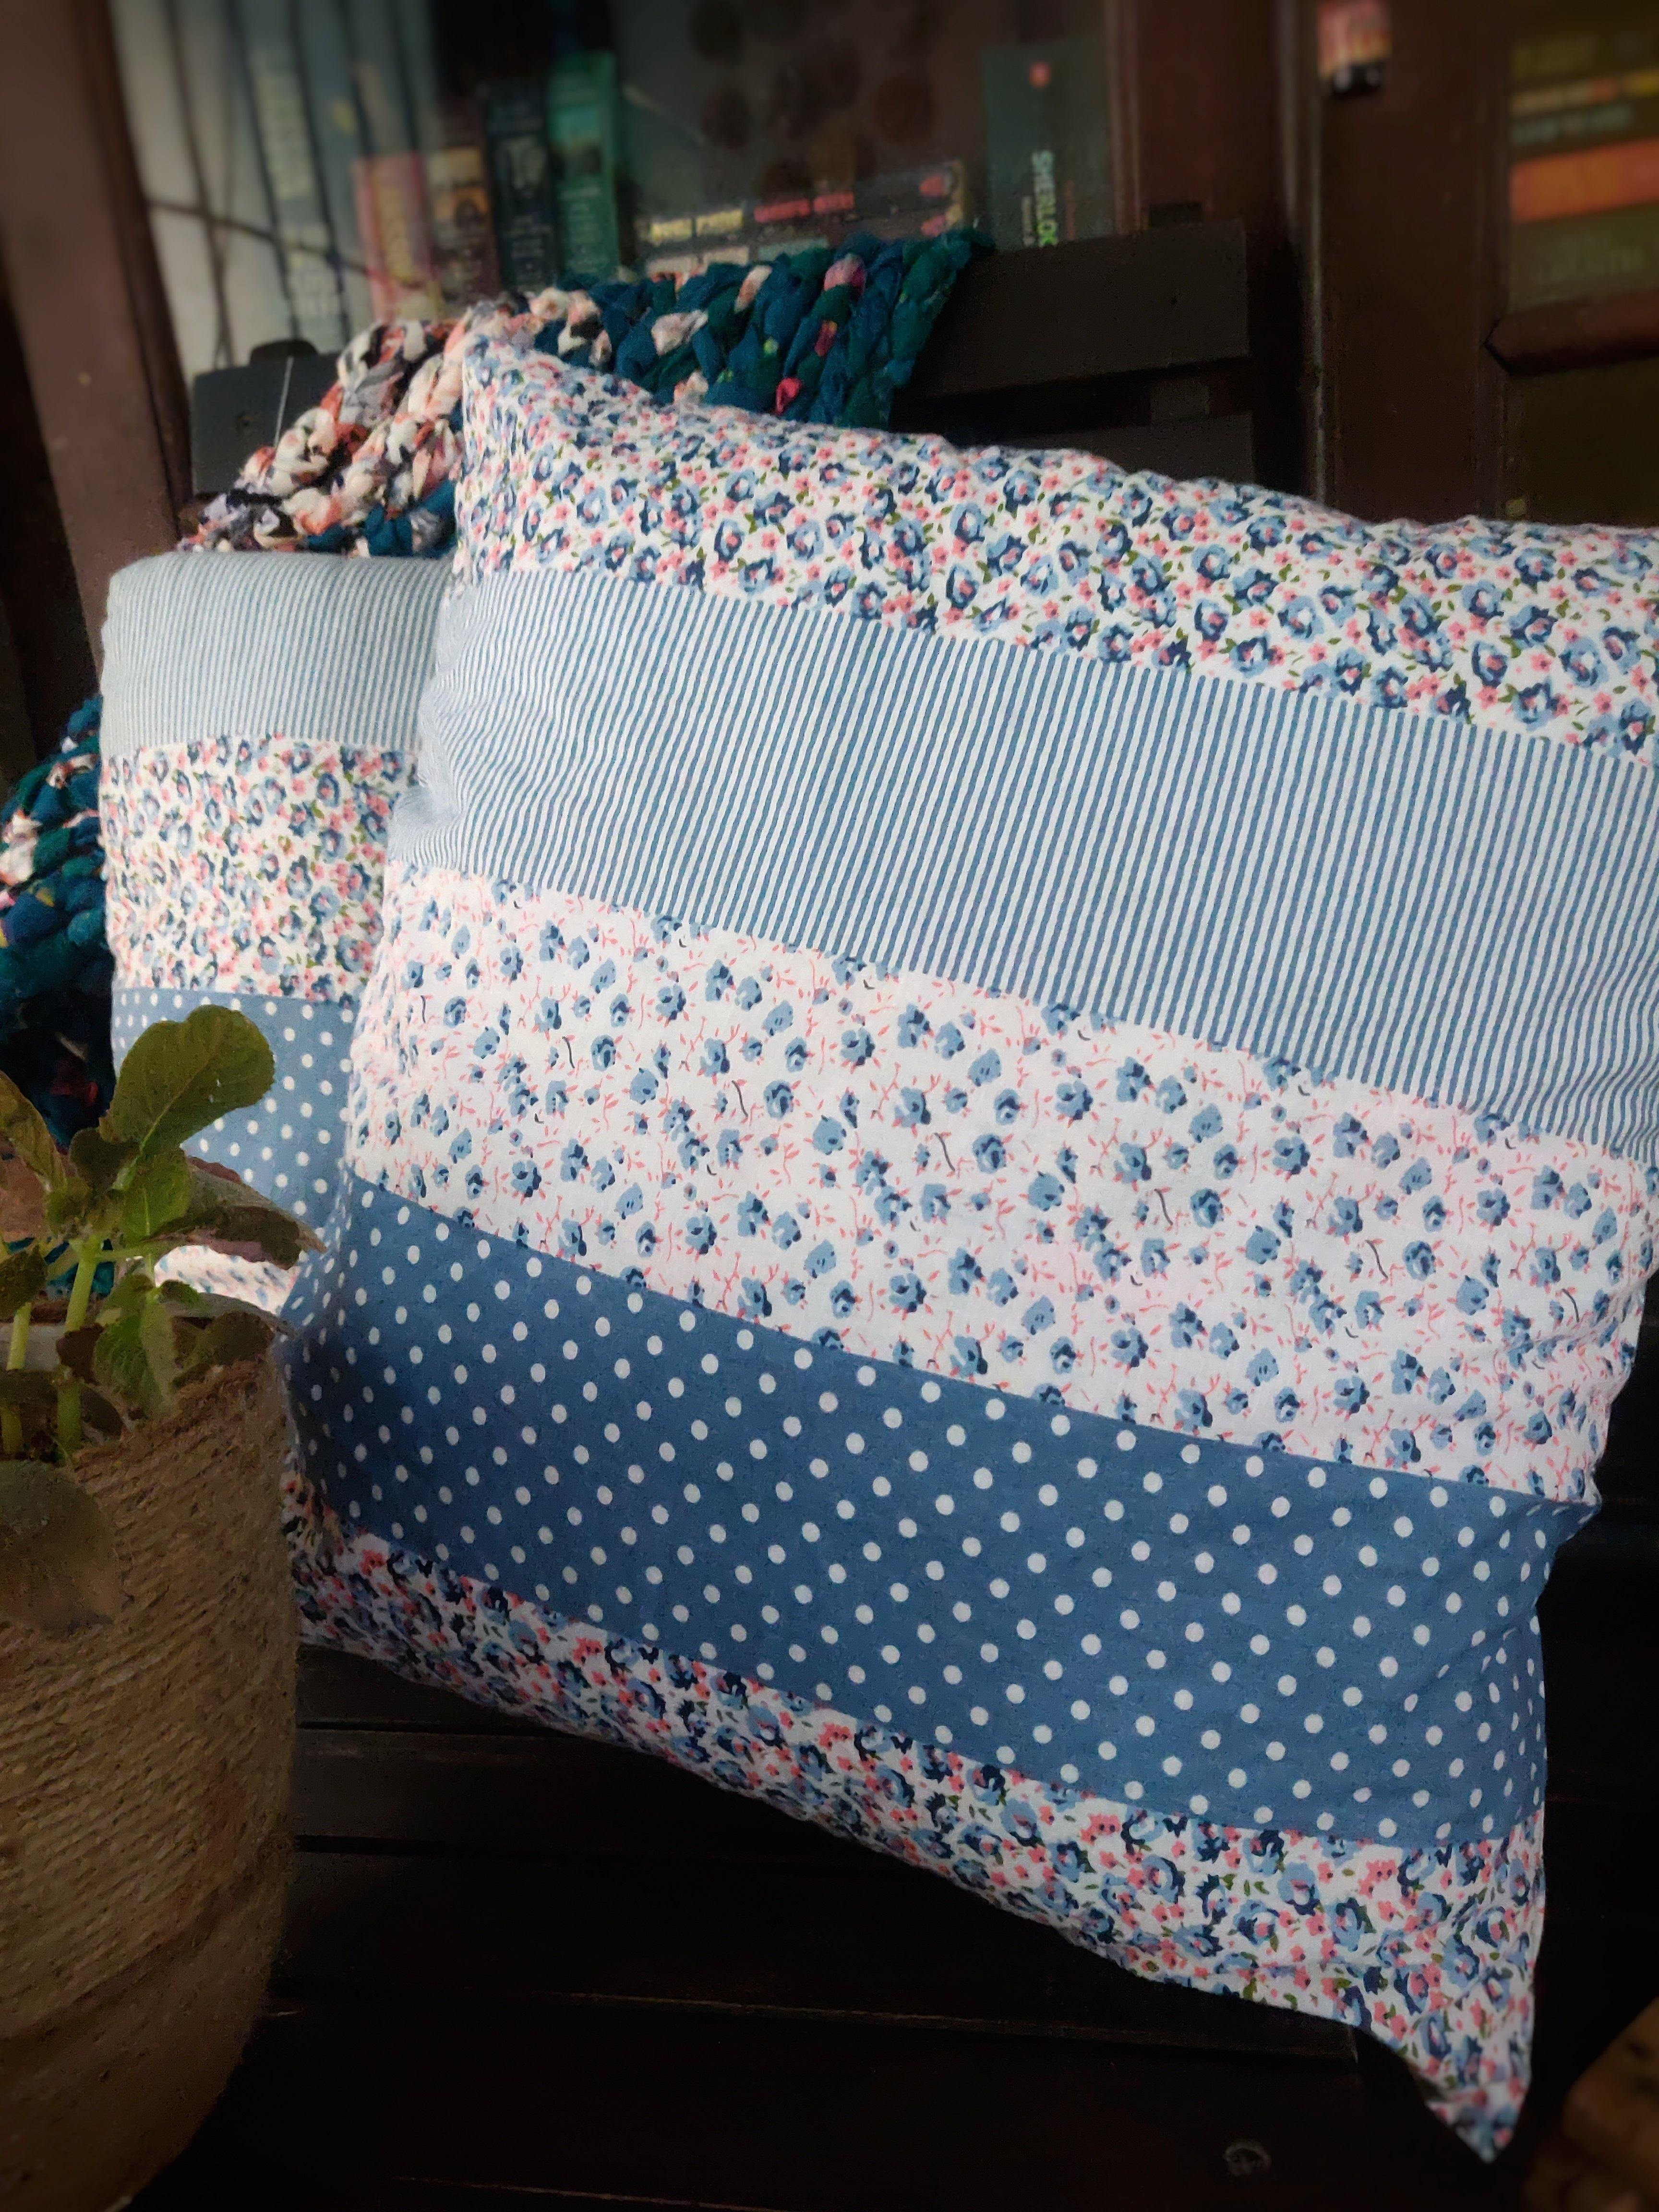 Everyday Blue Cushions - WhySoBlue